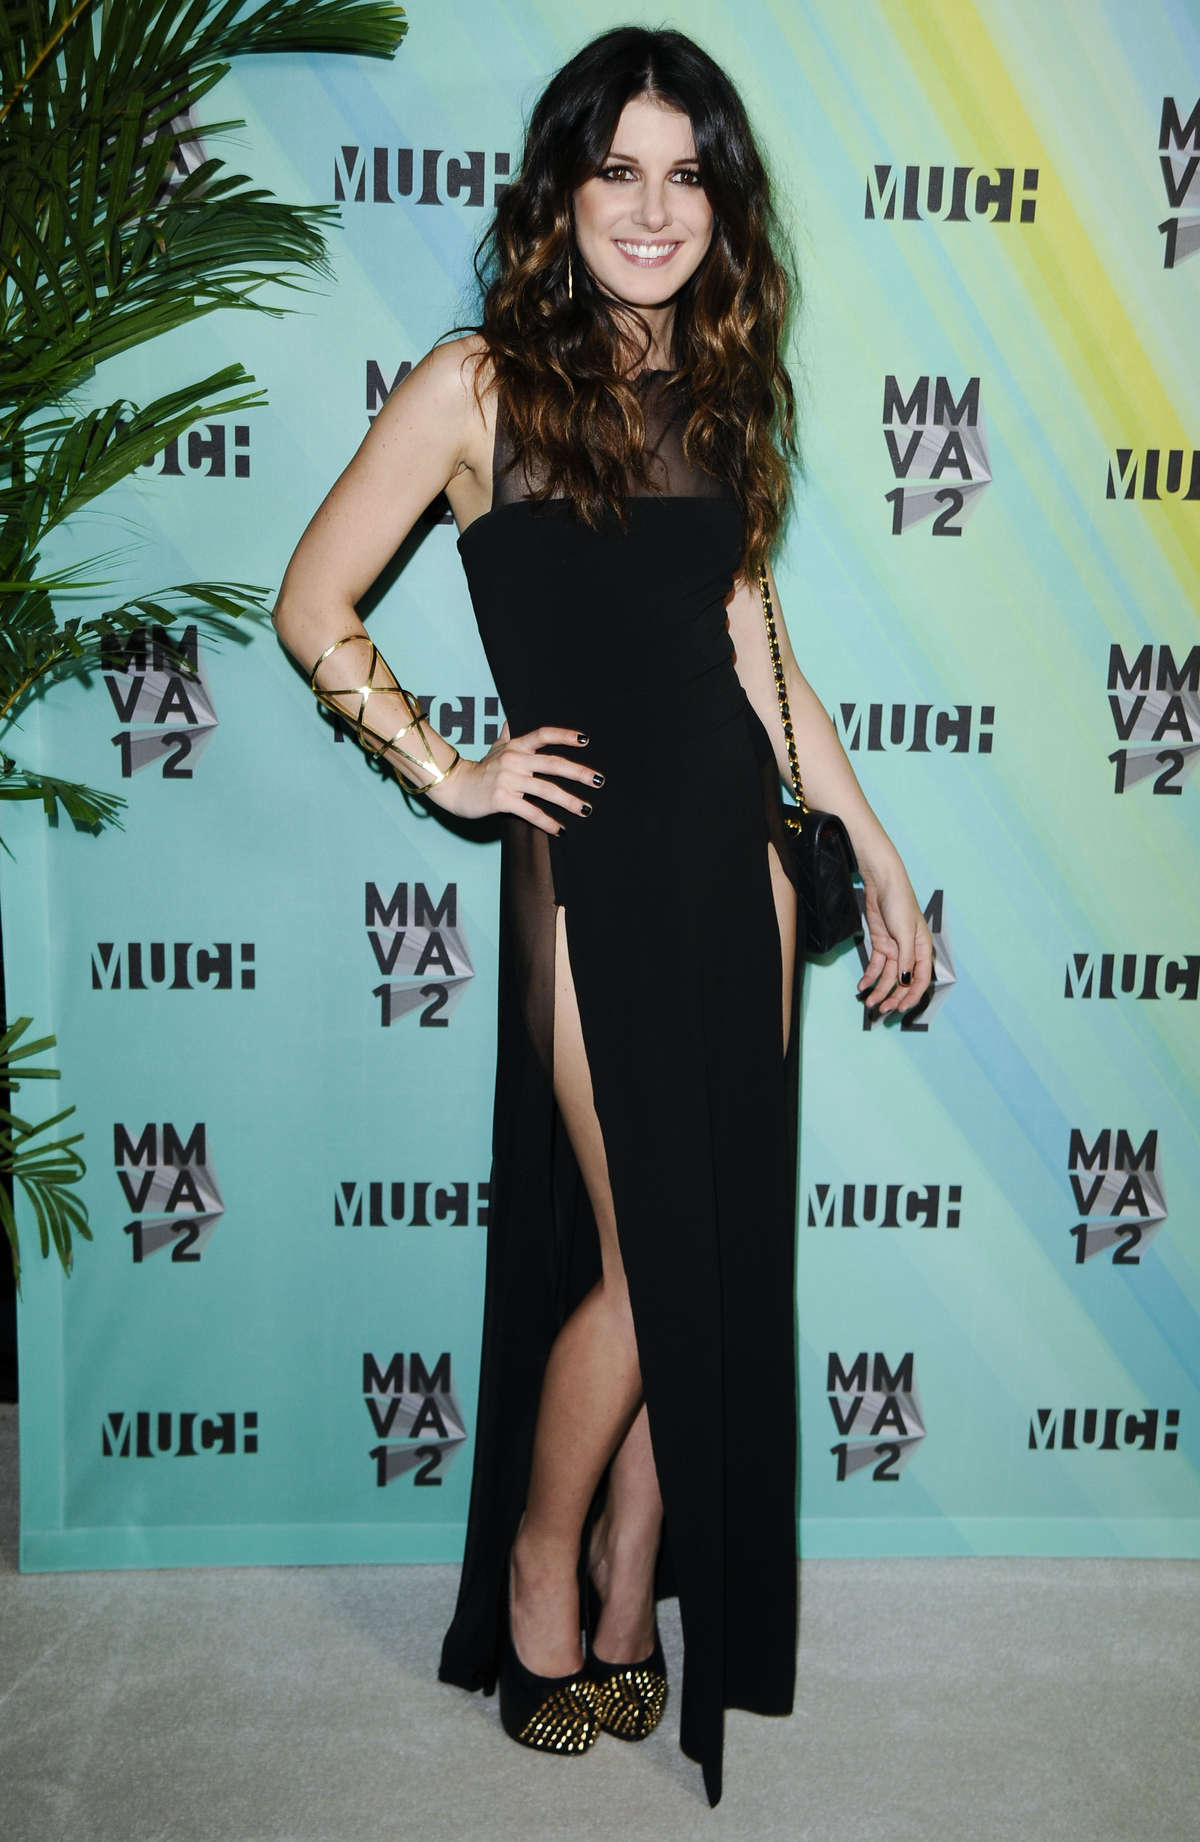 Video Shenae Grimes nudes (42 foto and video), Topless, Leaked, Instagram, swimsuit 2006